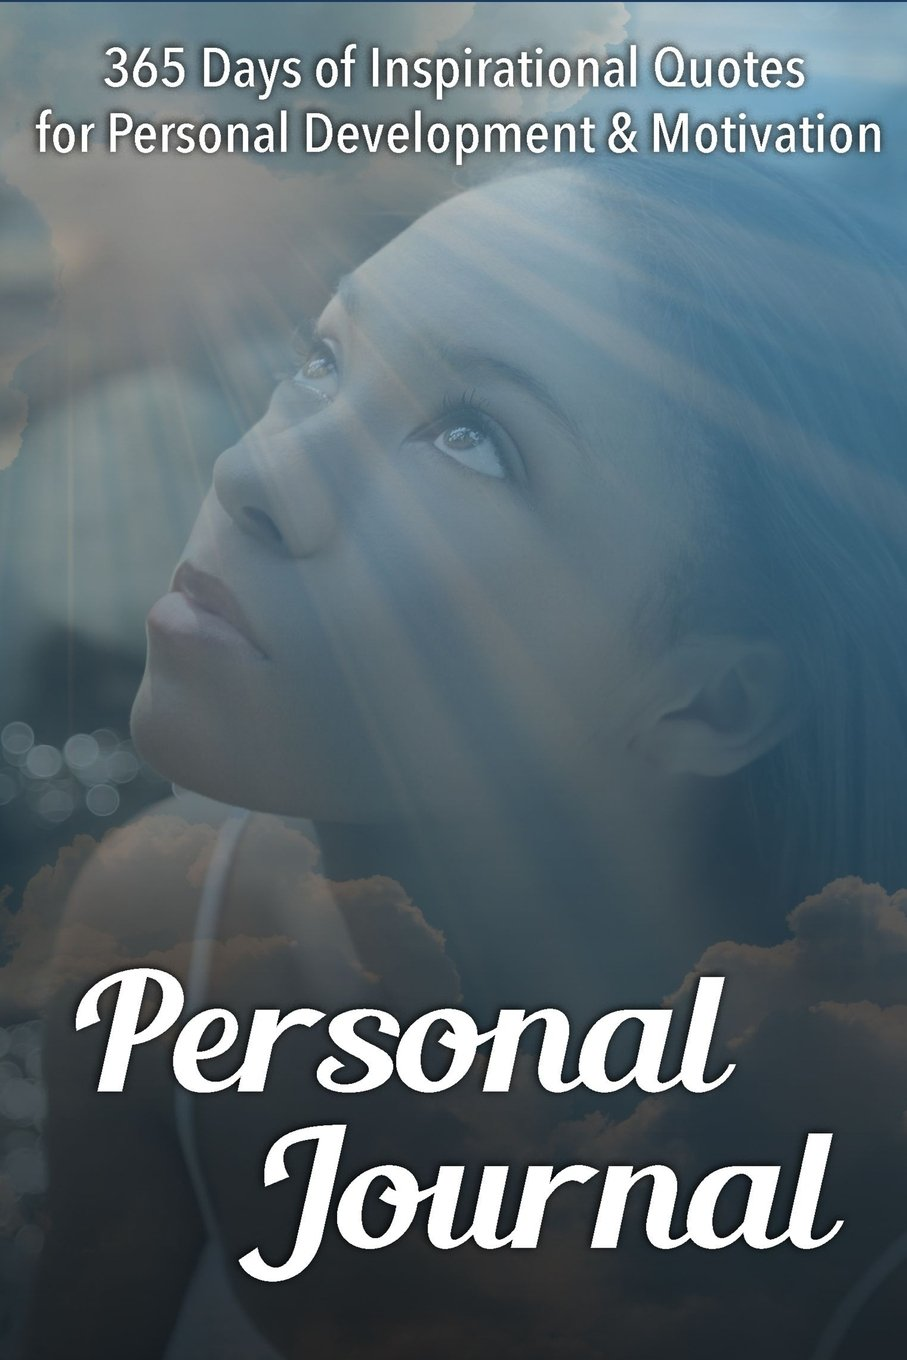 Image of: Tough Personal Journal 365 Days Of Inspirational Quotes For Personal Development And Motivation daily Journal Series I volume 1 Diary December 1 2015 Amazoncom Personal Journal 365 Days Of Inspirational Quotes For Personal